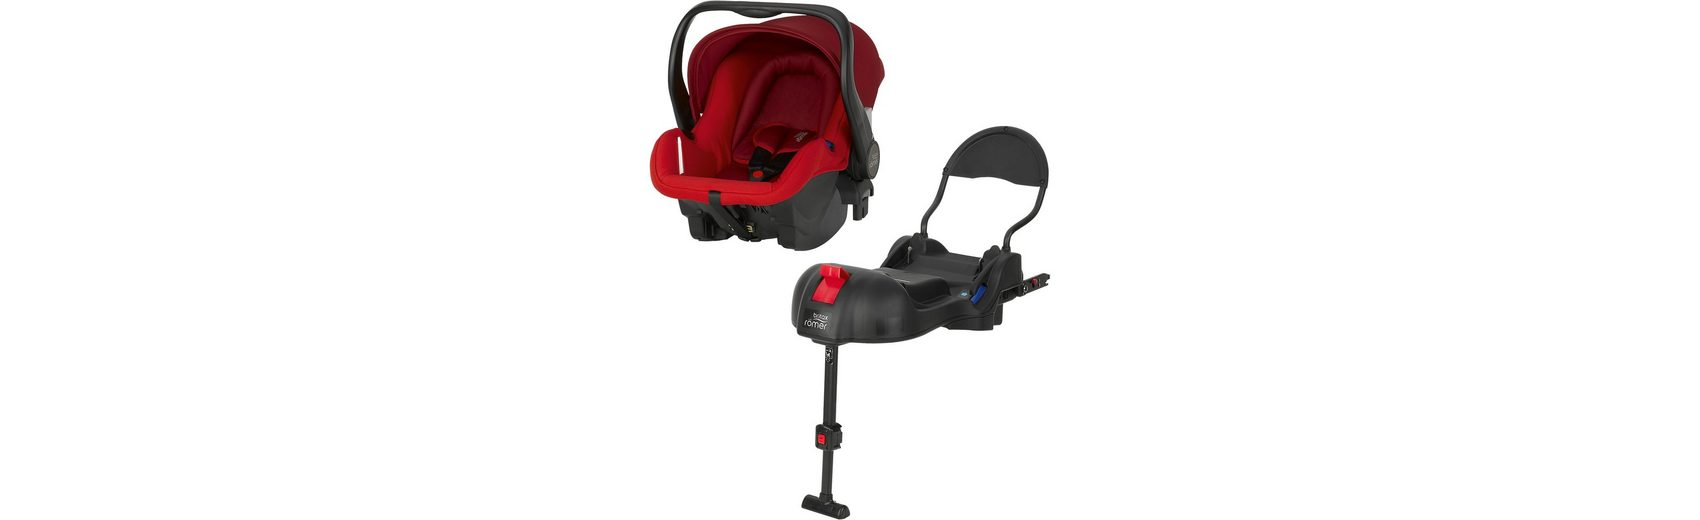 Britax Römer Babyschale Primo inkl. Basis, Flame Red, 2016